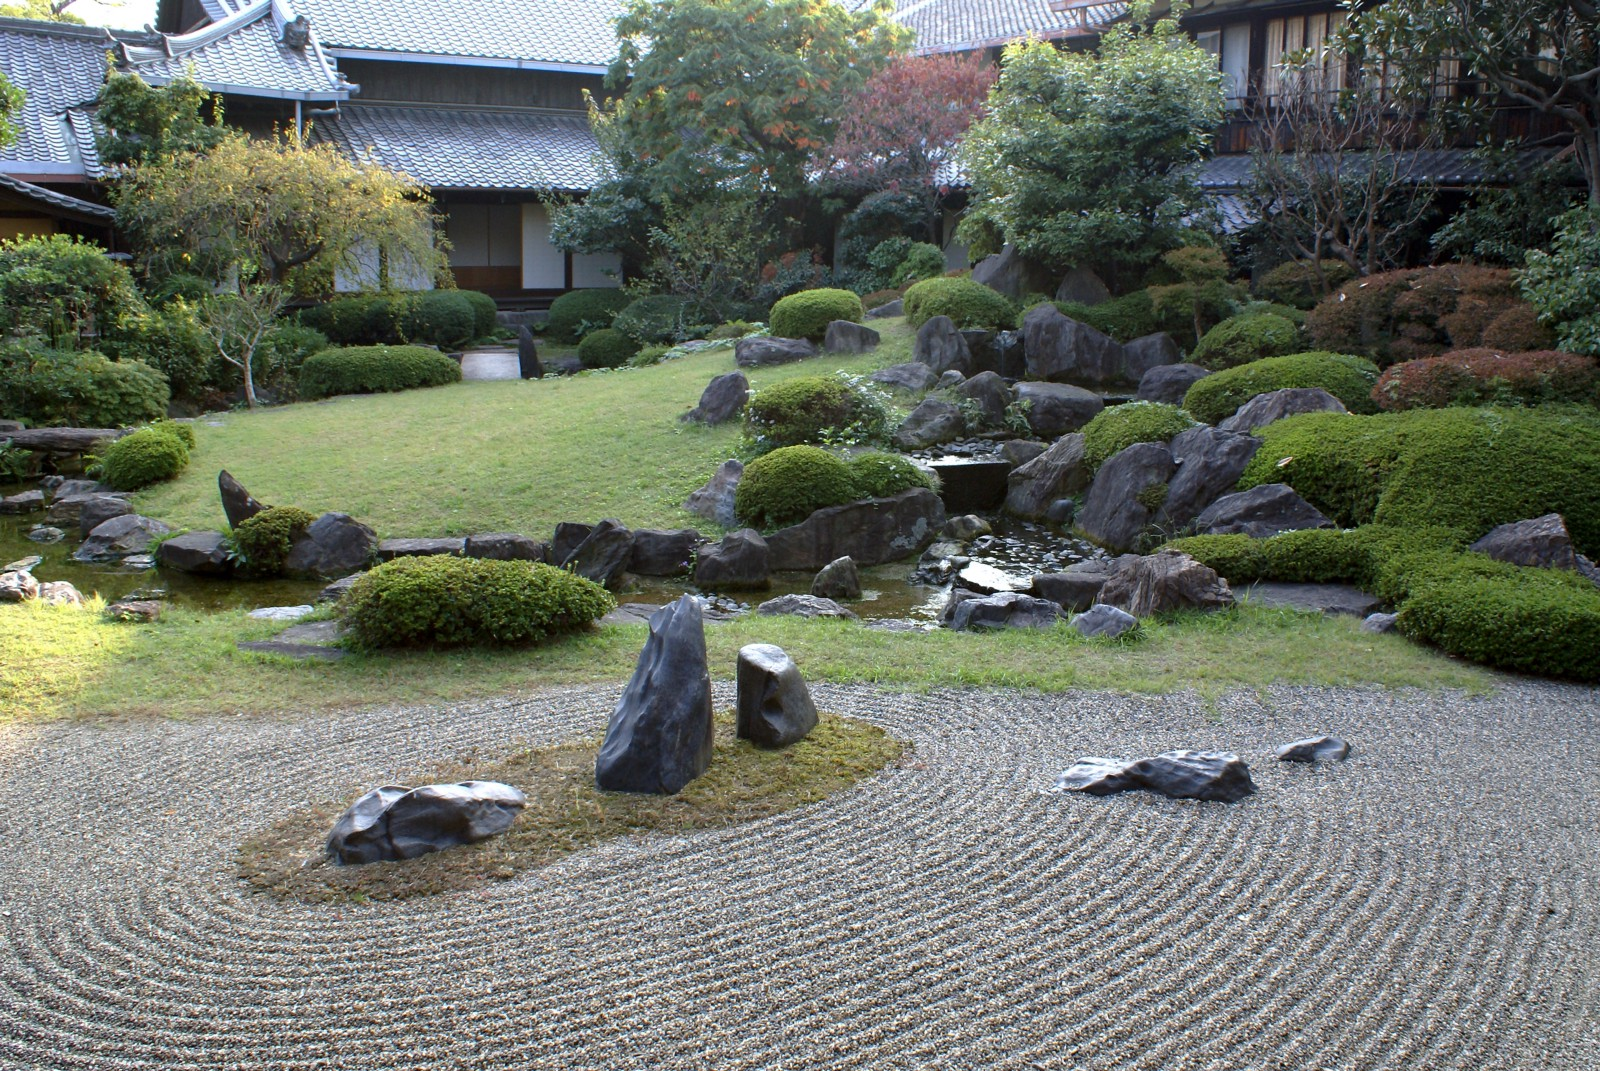 Just picture it  switching from the crowded streets of the City (of  London) to a serene Zen Garden at your backyard. Priceless. So keep reading  to see how ...